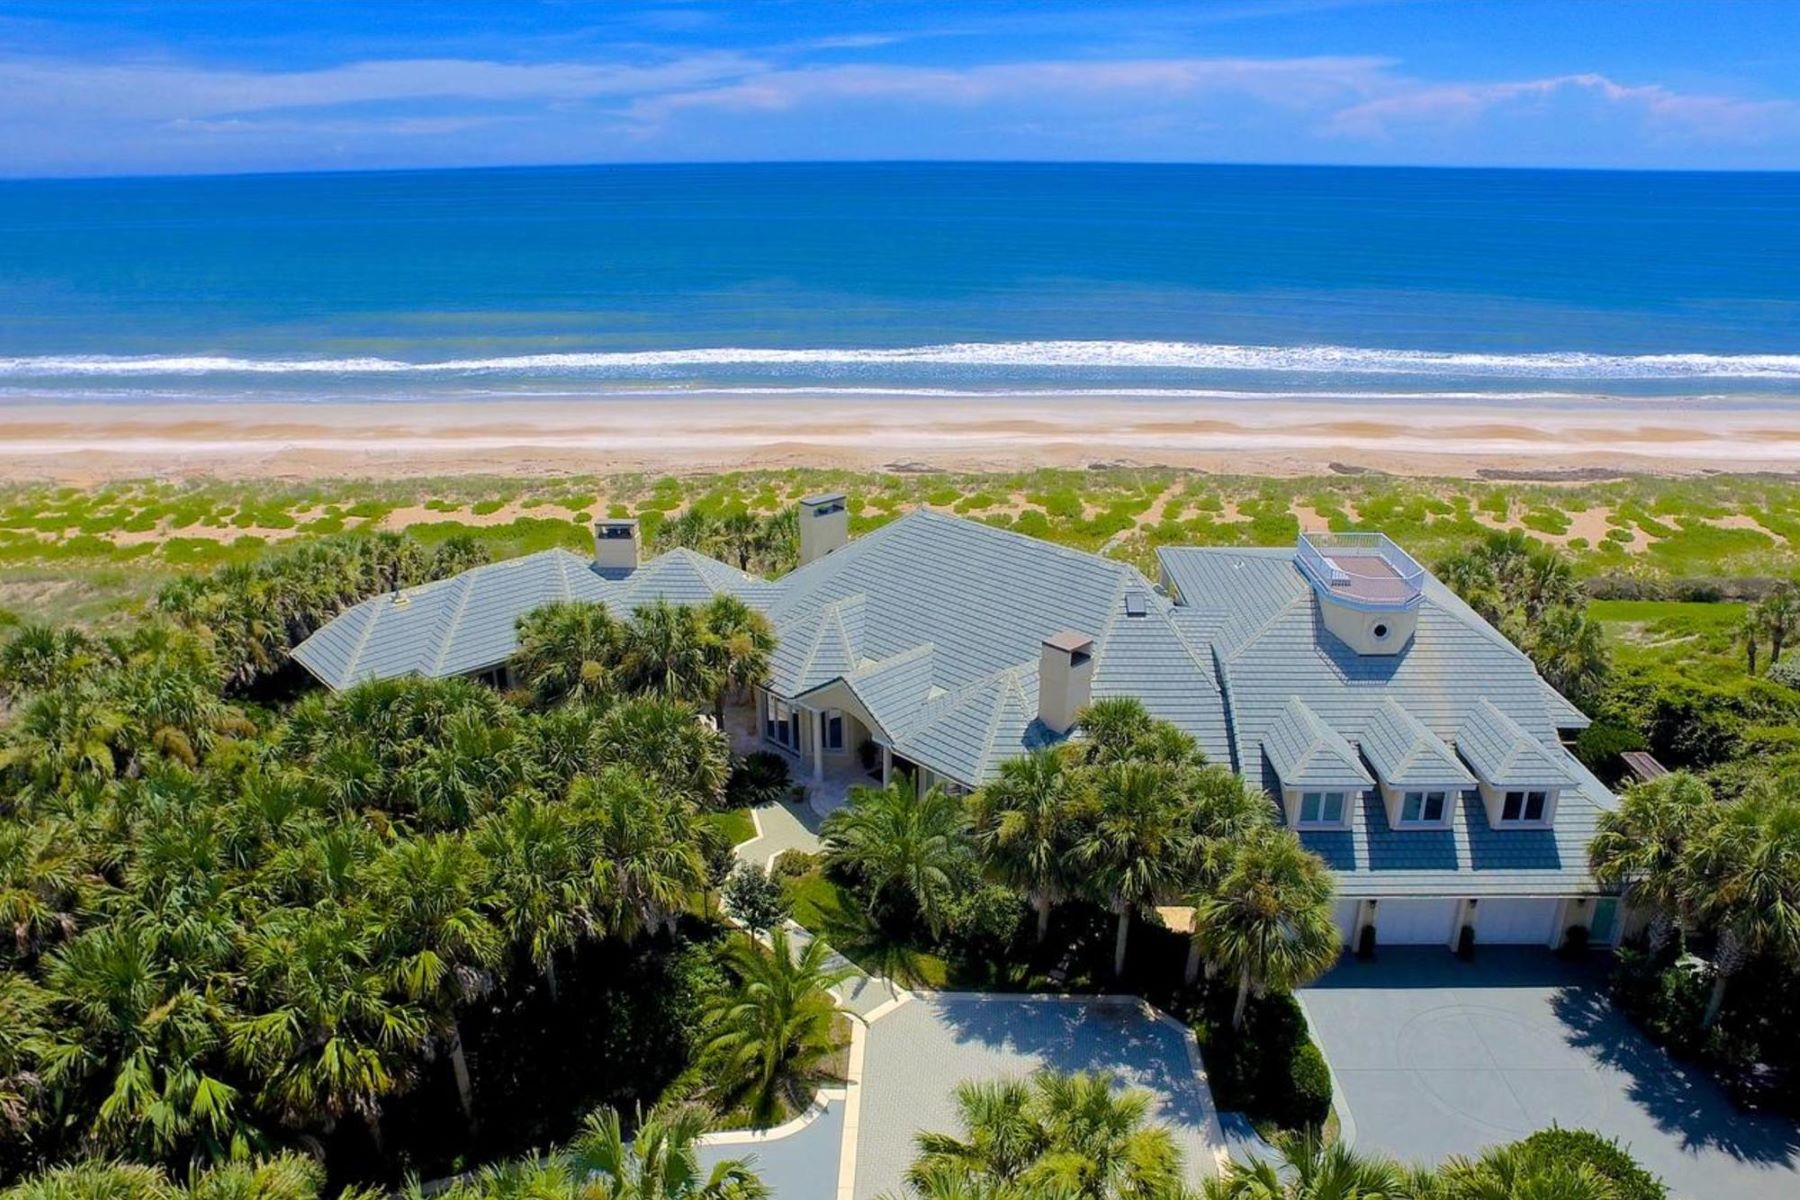 Single Family Homes for Sale at 1299 Ponte Vedra Blvd Ponte Vedra Beach, Florida 32082 United States